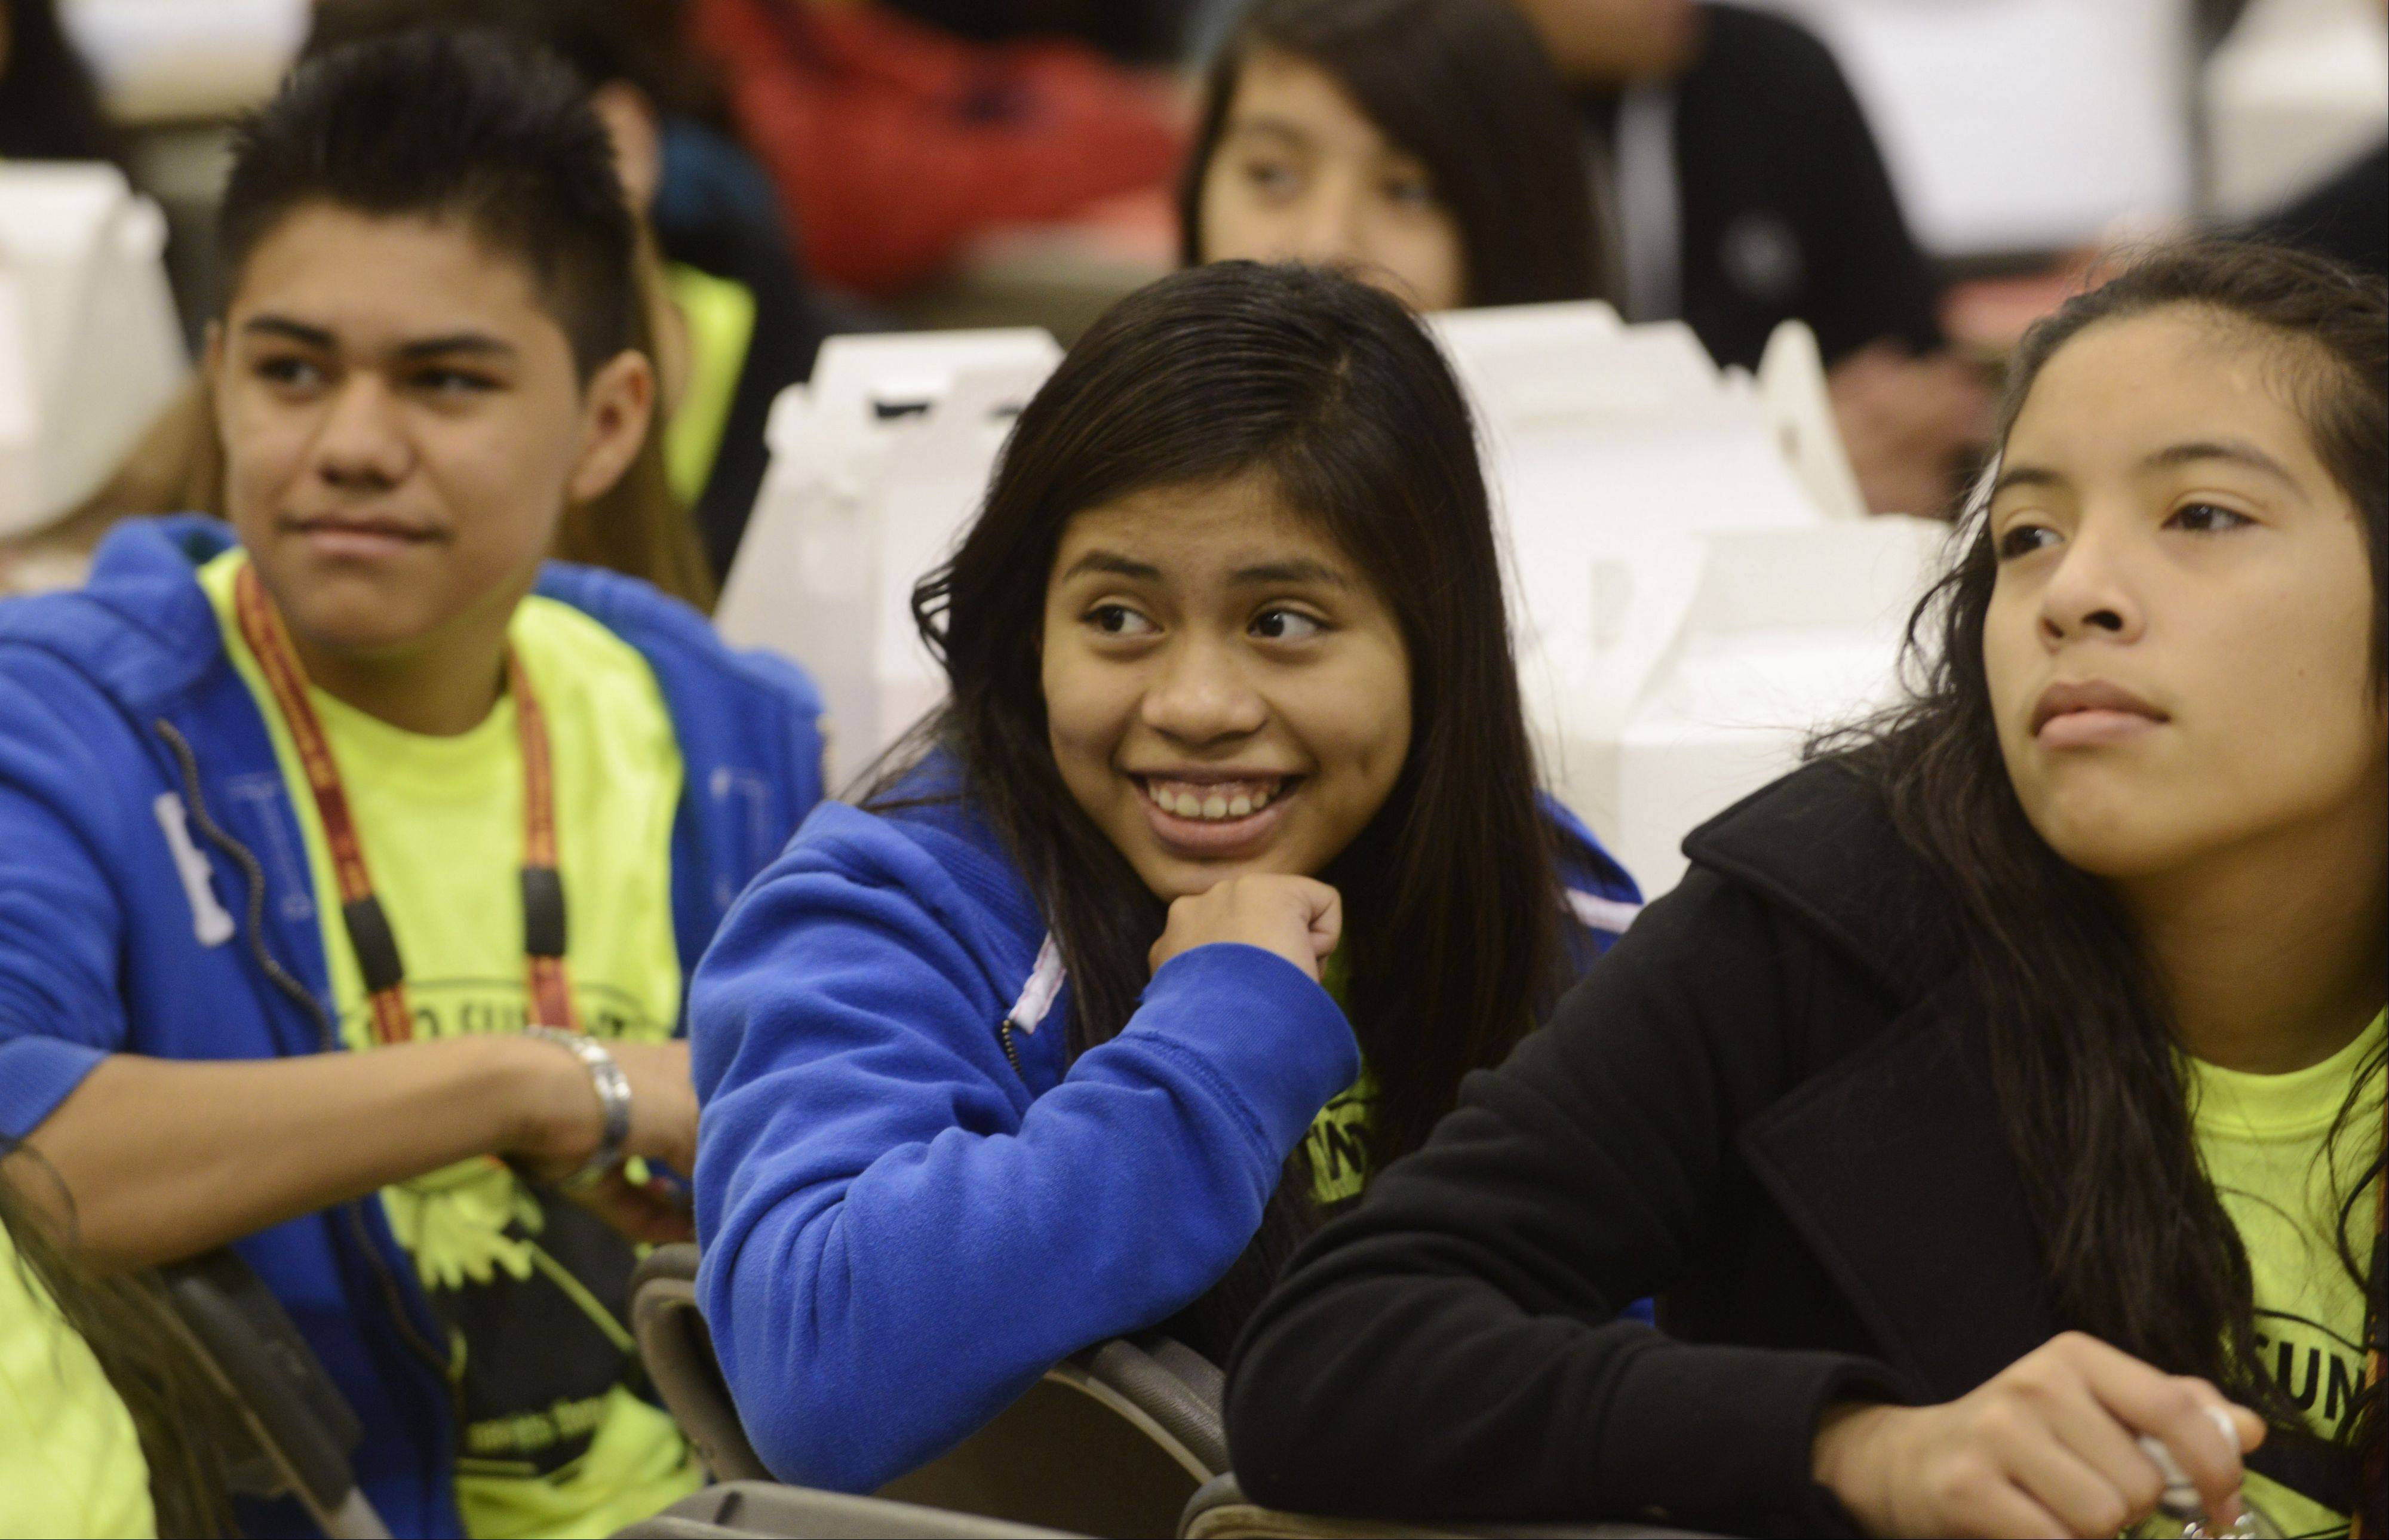 JOE LEWNARD/jlewnard@dailyherald.comSchaumburg High School freshman Anayeli Vazquez, middle, smiles while watching a performance during Friday's Latino Summit at Harper College in Palatine.